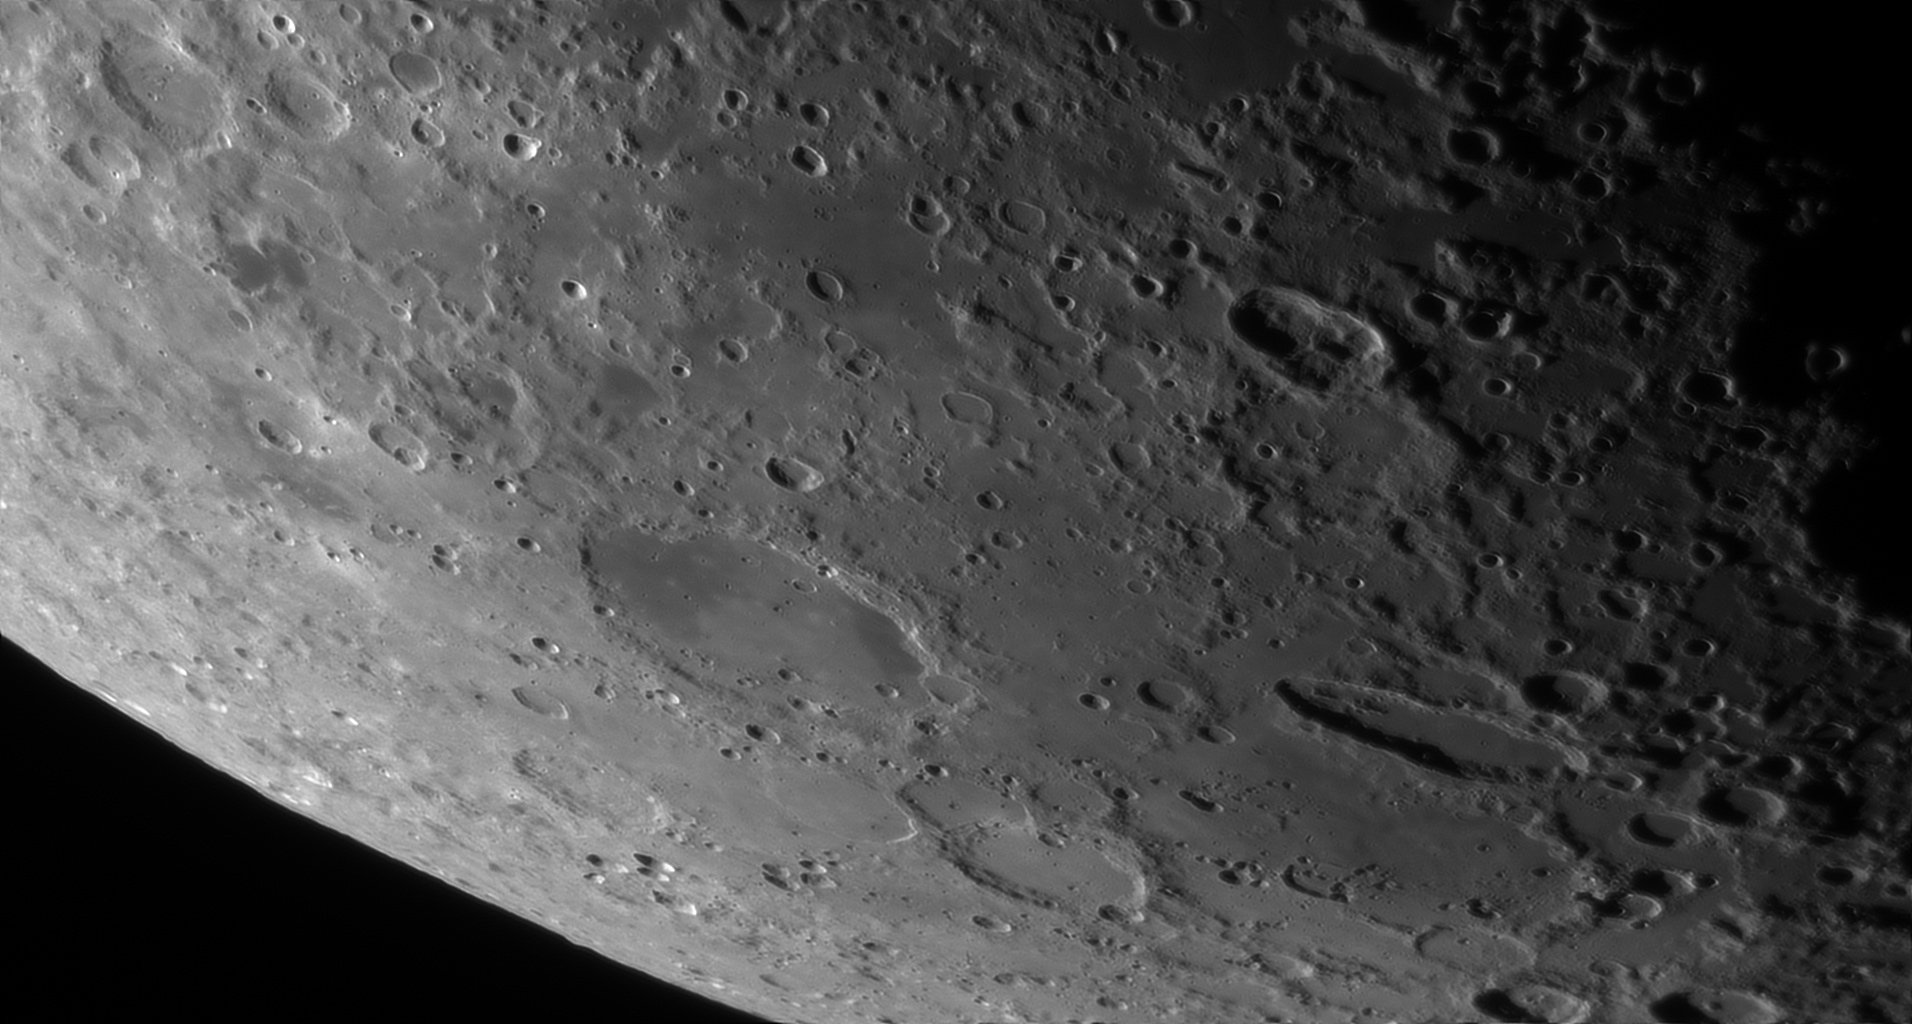 5d97a698e56f4_Moon_055838_230919_ZWOASI290MM_Rouge_23A_AS_P40_lapl4_ap428.jpg.1e051bb06d8c58710368f0785f301fcc.jpg